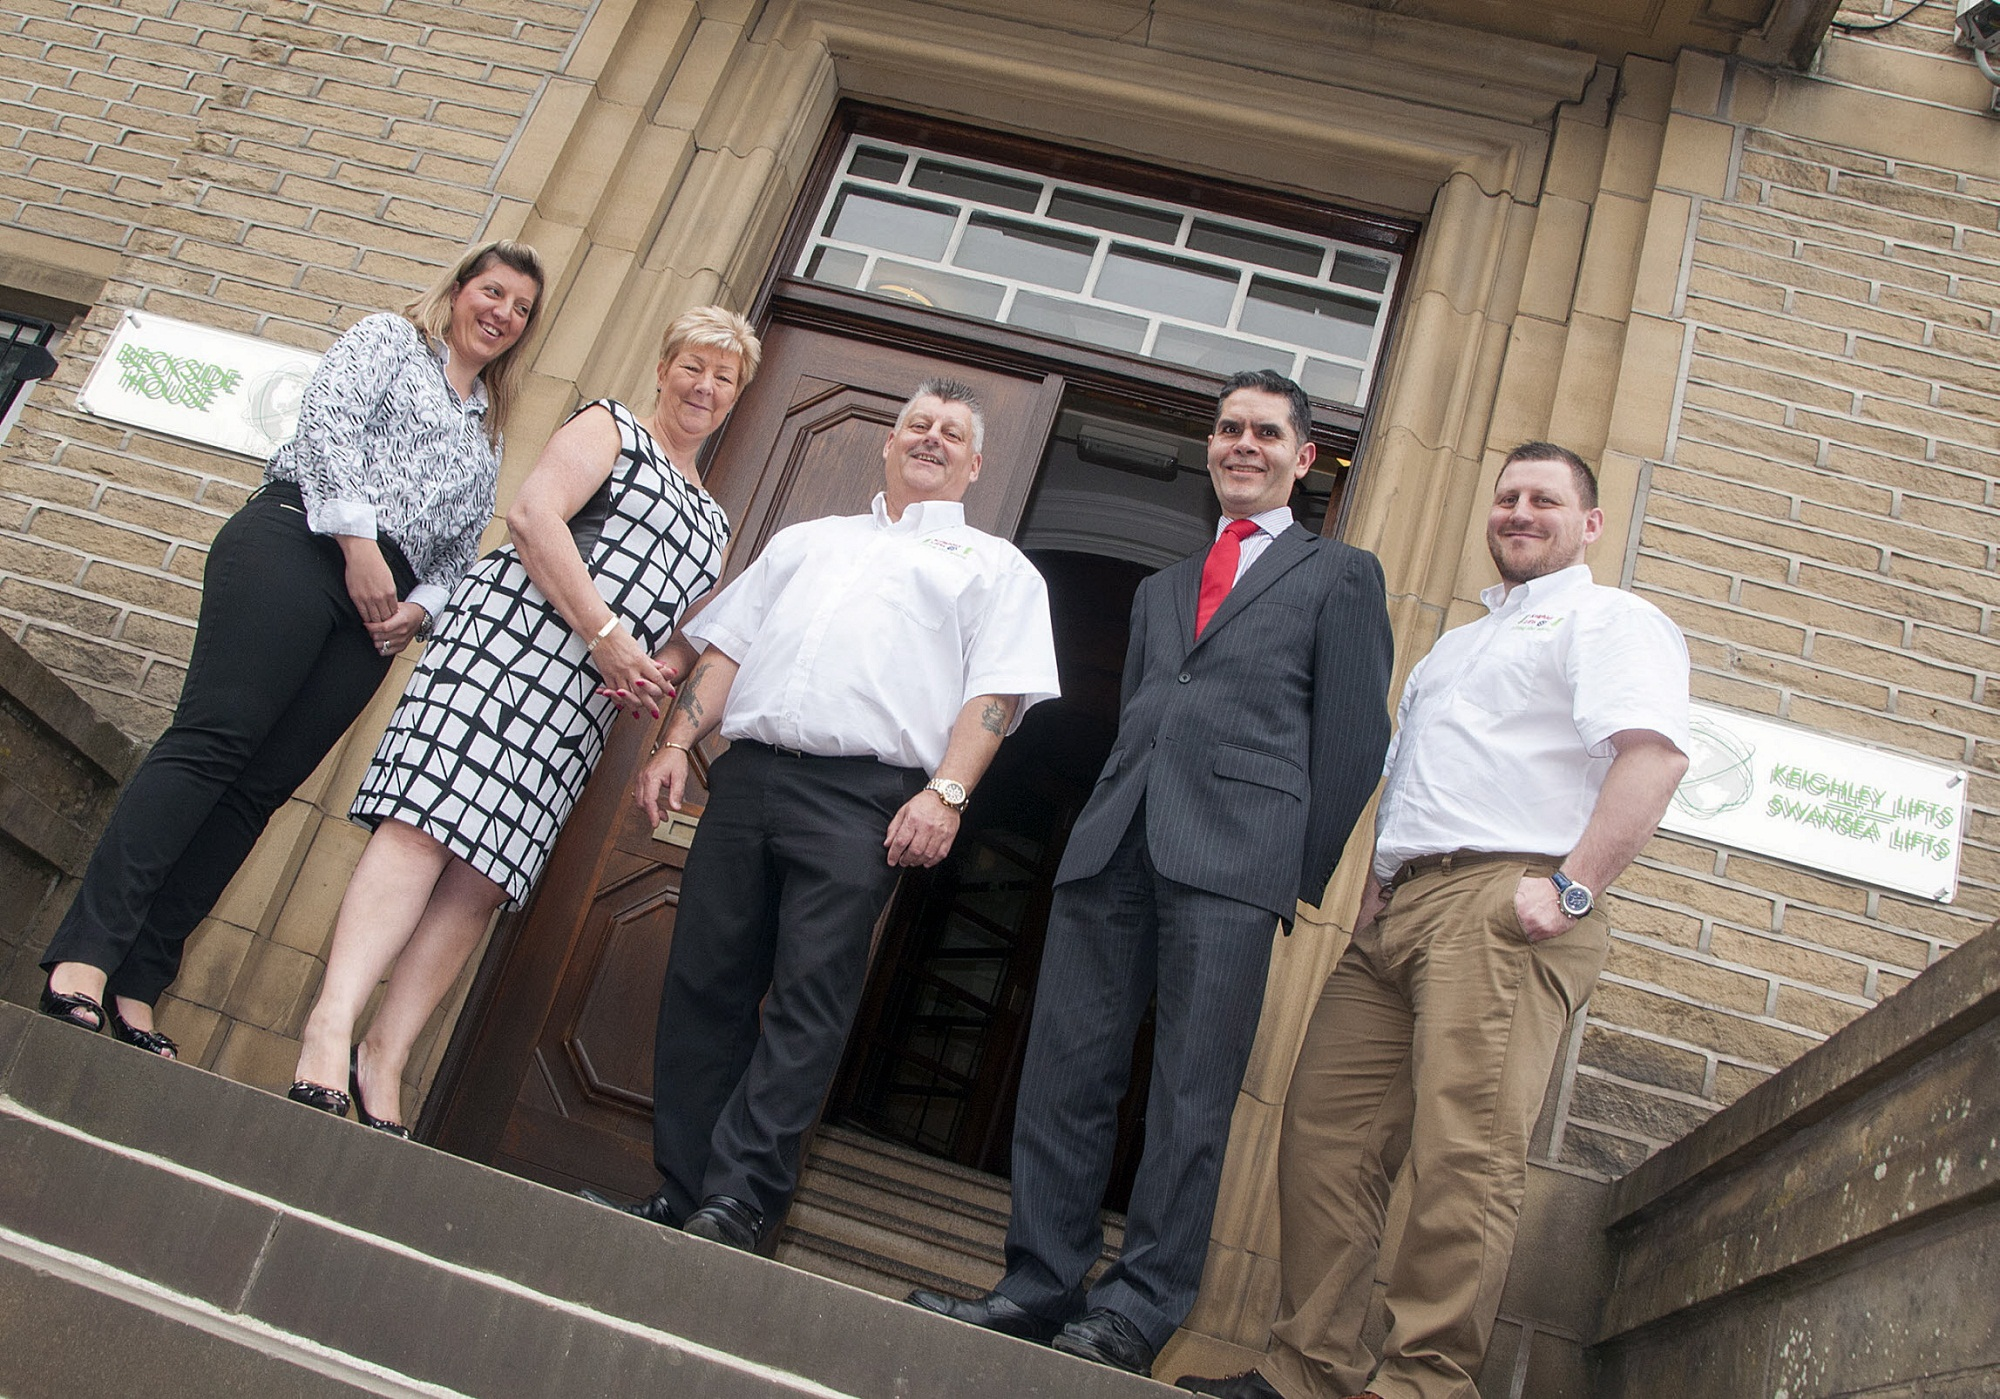 Keighley Lifts managing director, Stuart Boocock, centre, with Ben Cutts, of Lloyds Bank Commercial Banking, and, from left, his daughter, Rebecca Boocock-Wilson, wife, Isabel, and son, Garry Boocock